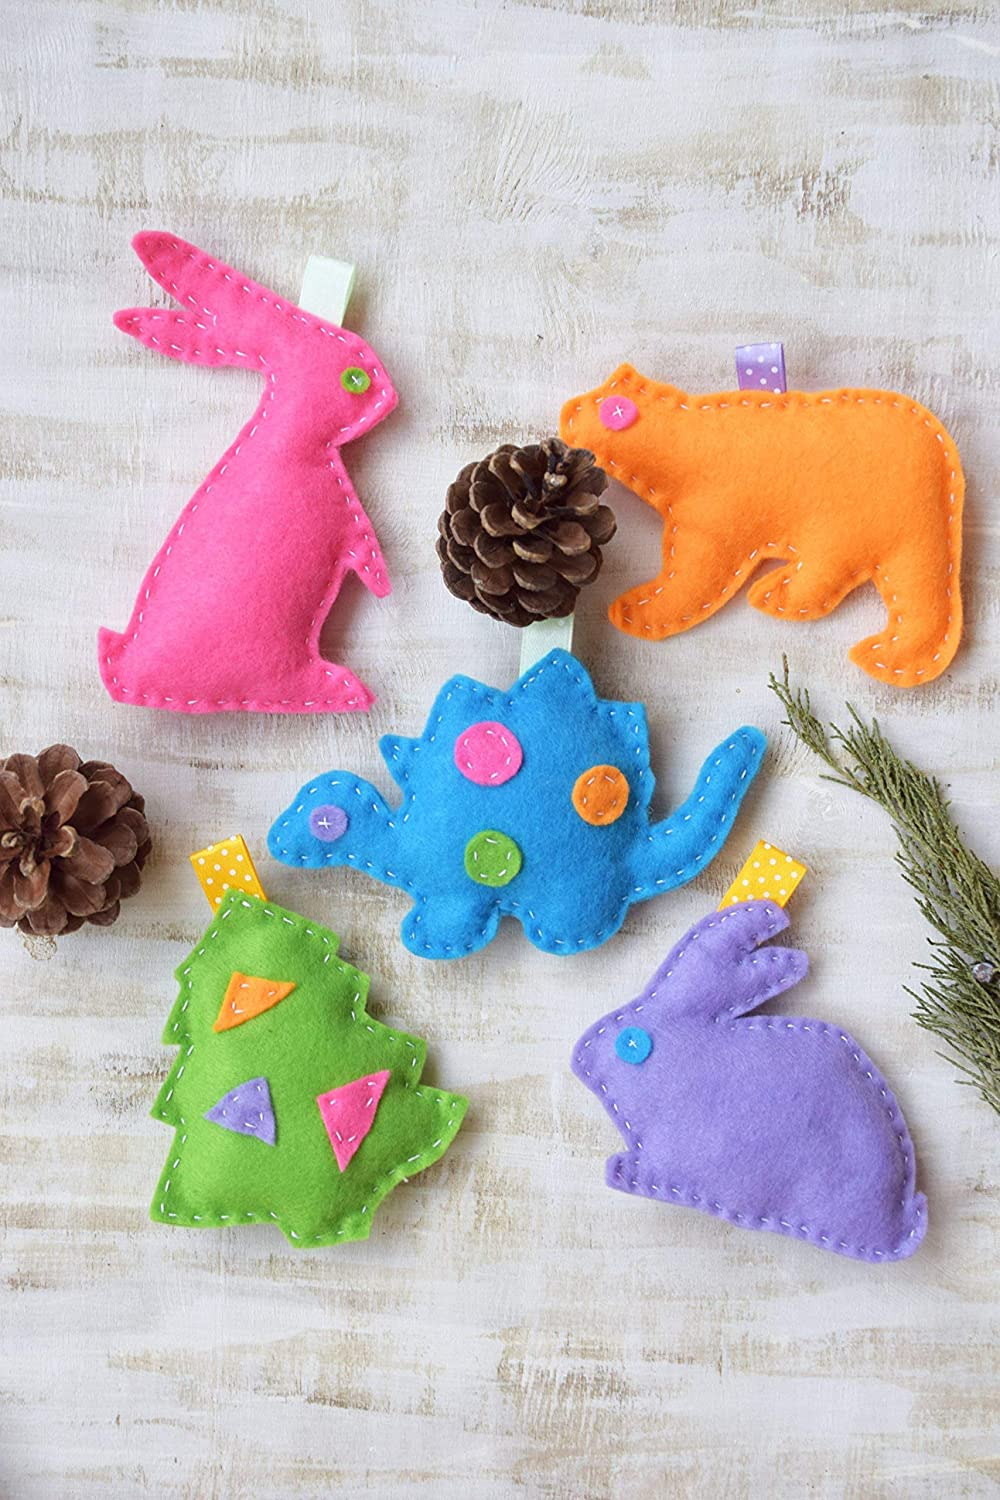 Amazon Com Baby Mobile Toys Felt Stuffed Animals Nursery Decor Play Set Forest Woodland Rattles Gym Play Nursery Decor Ornaments Baby Shower Gift Educational Sensory Toys Crib Toddler Handmade